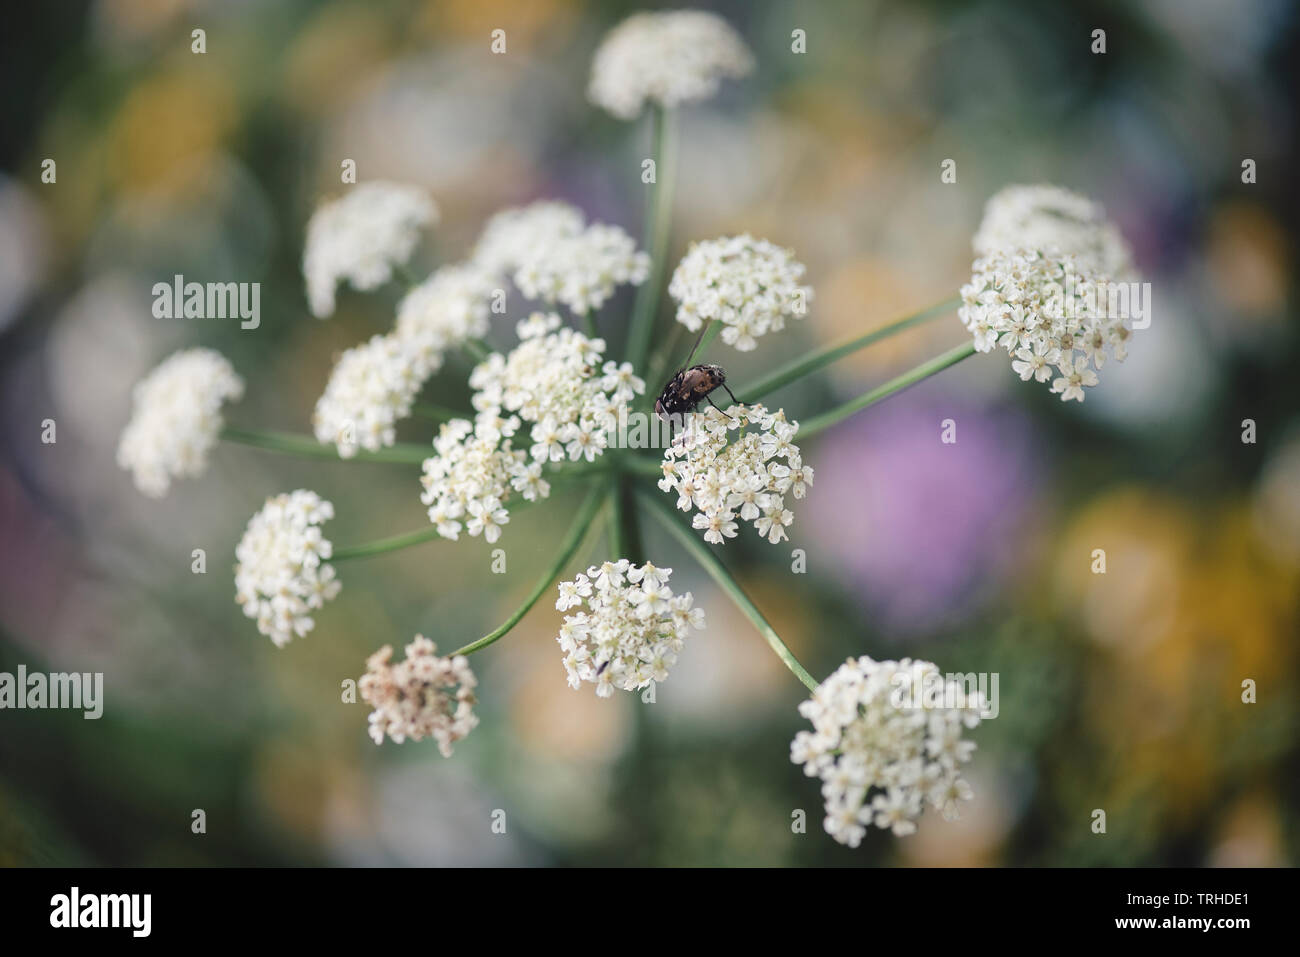 Lacy White Flower Heads Stock Photo